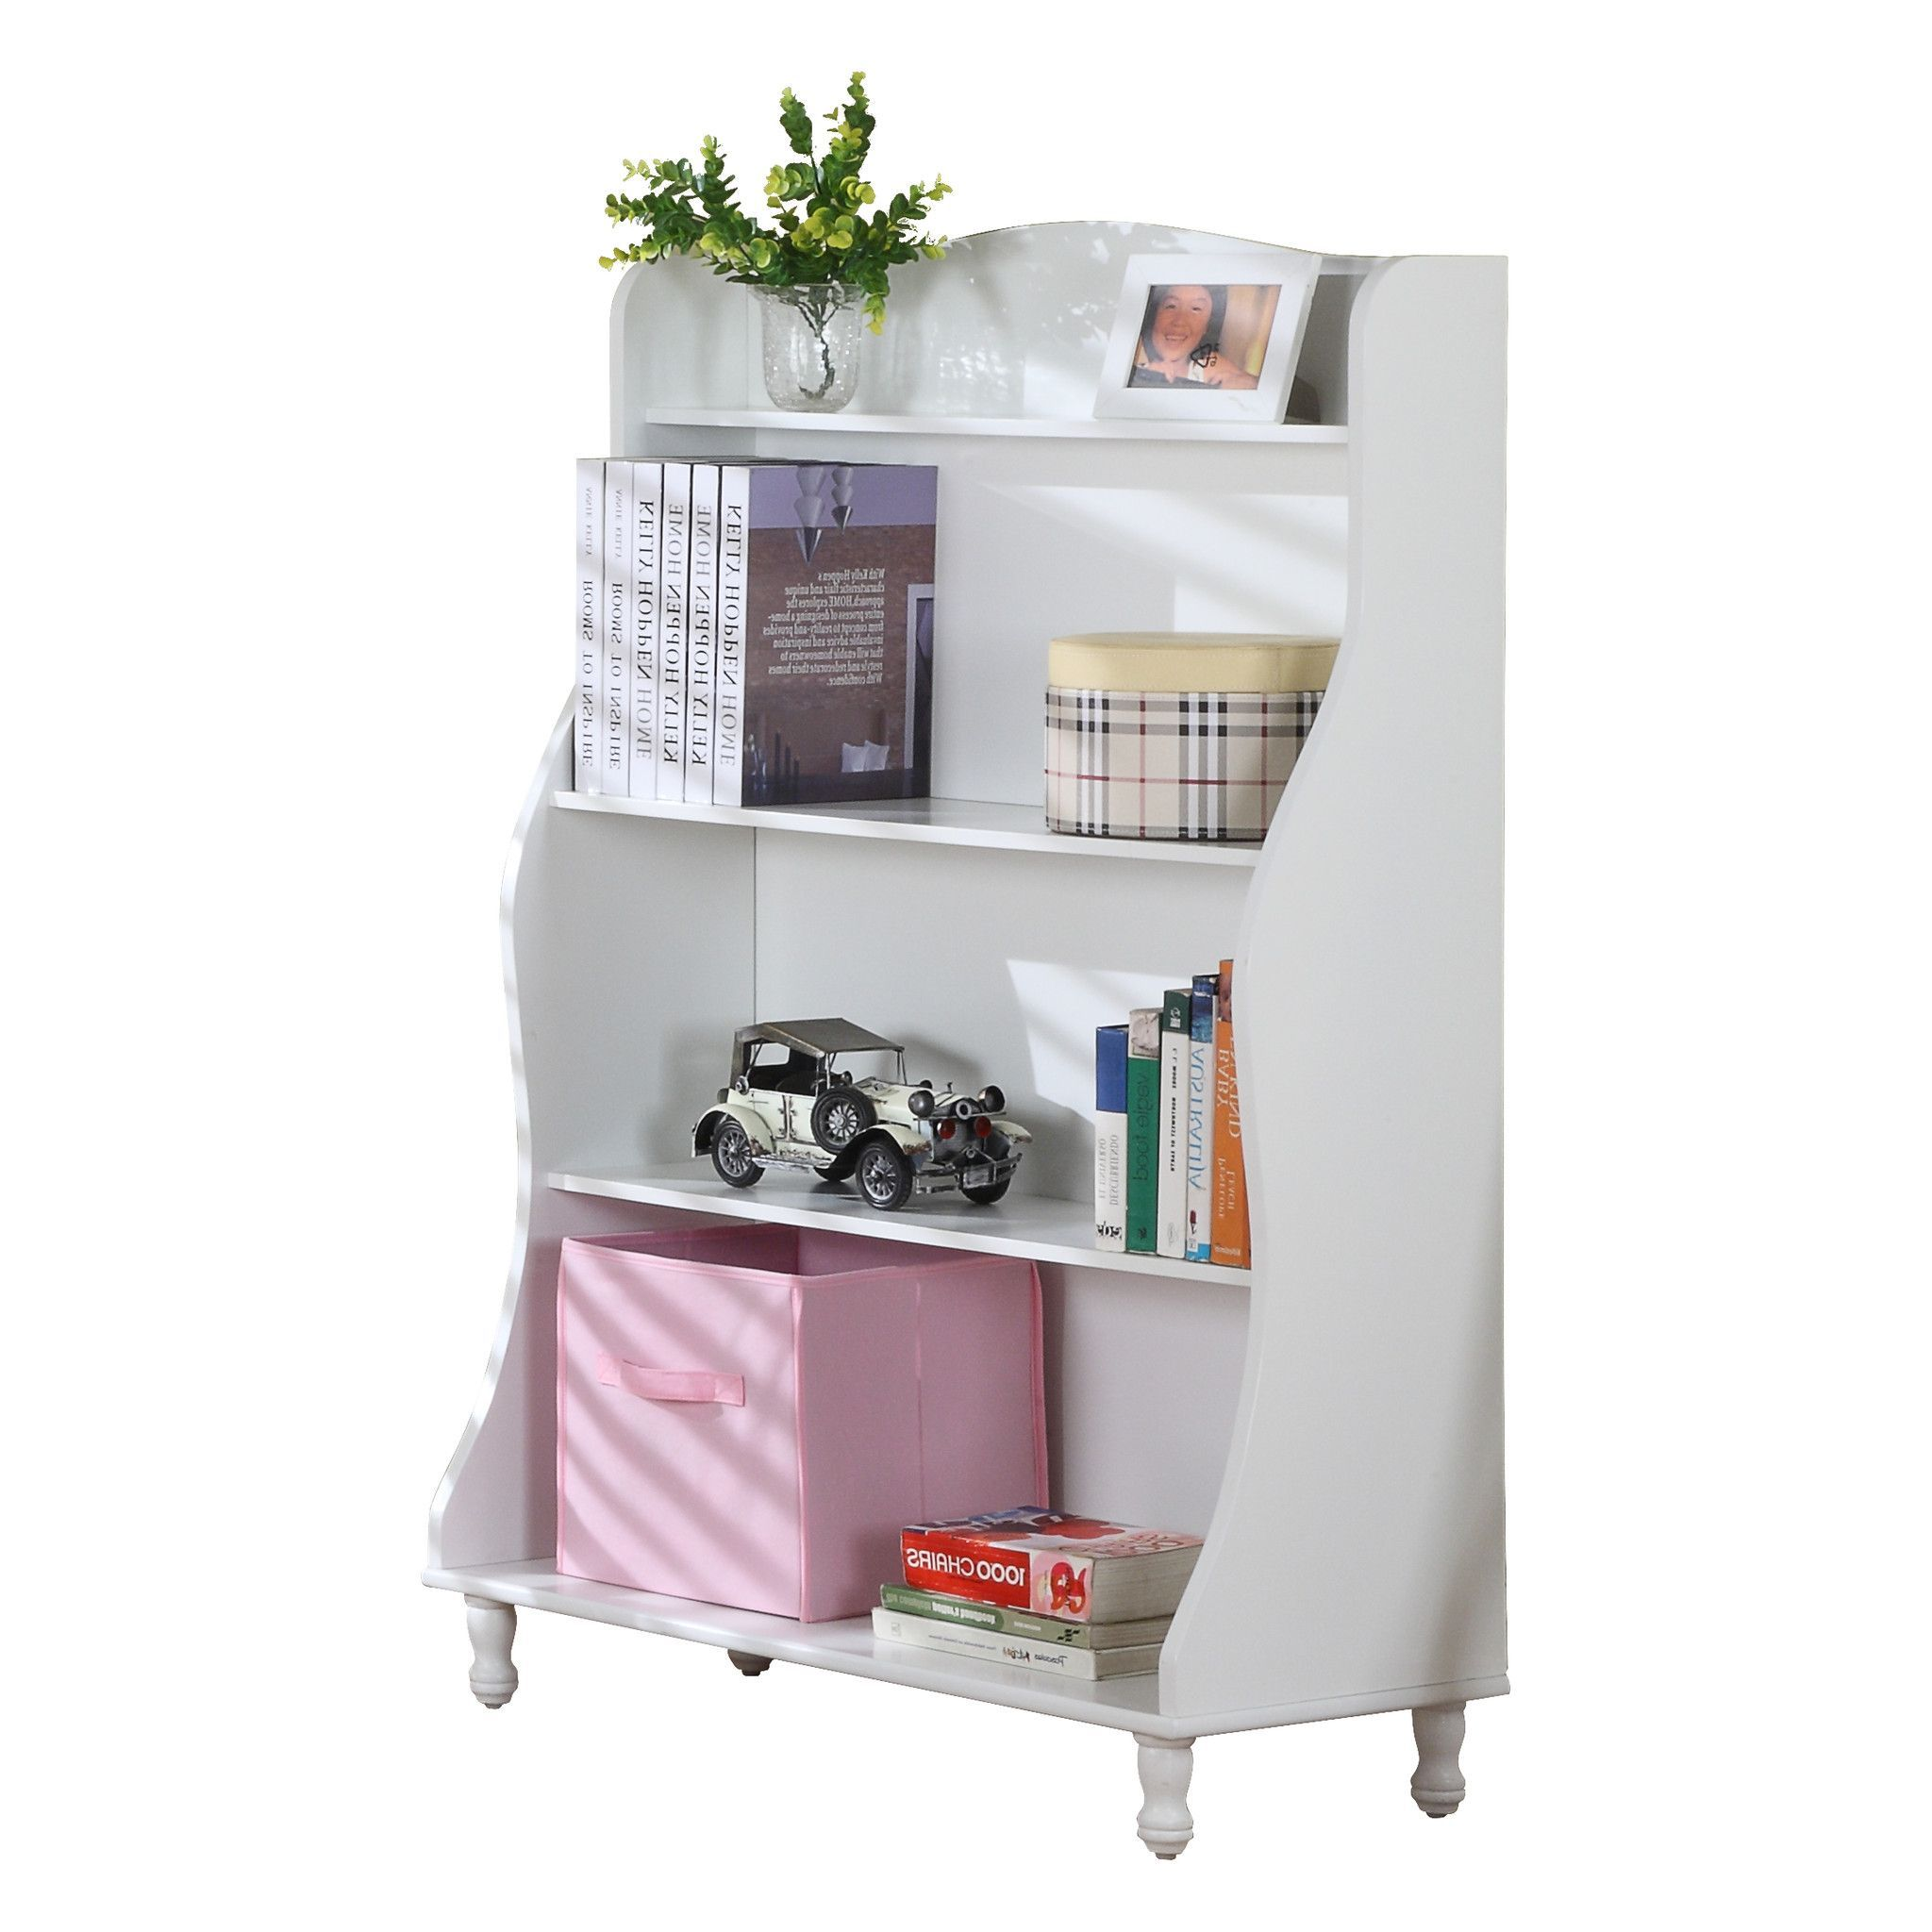 Pilaster Designs - Wood 3-Tier Tall Bookcase, White Finish